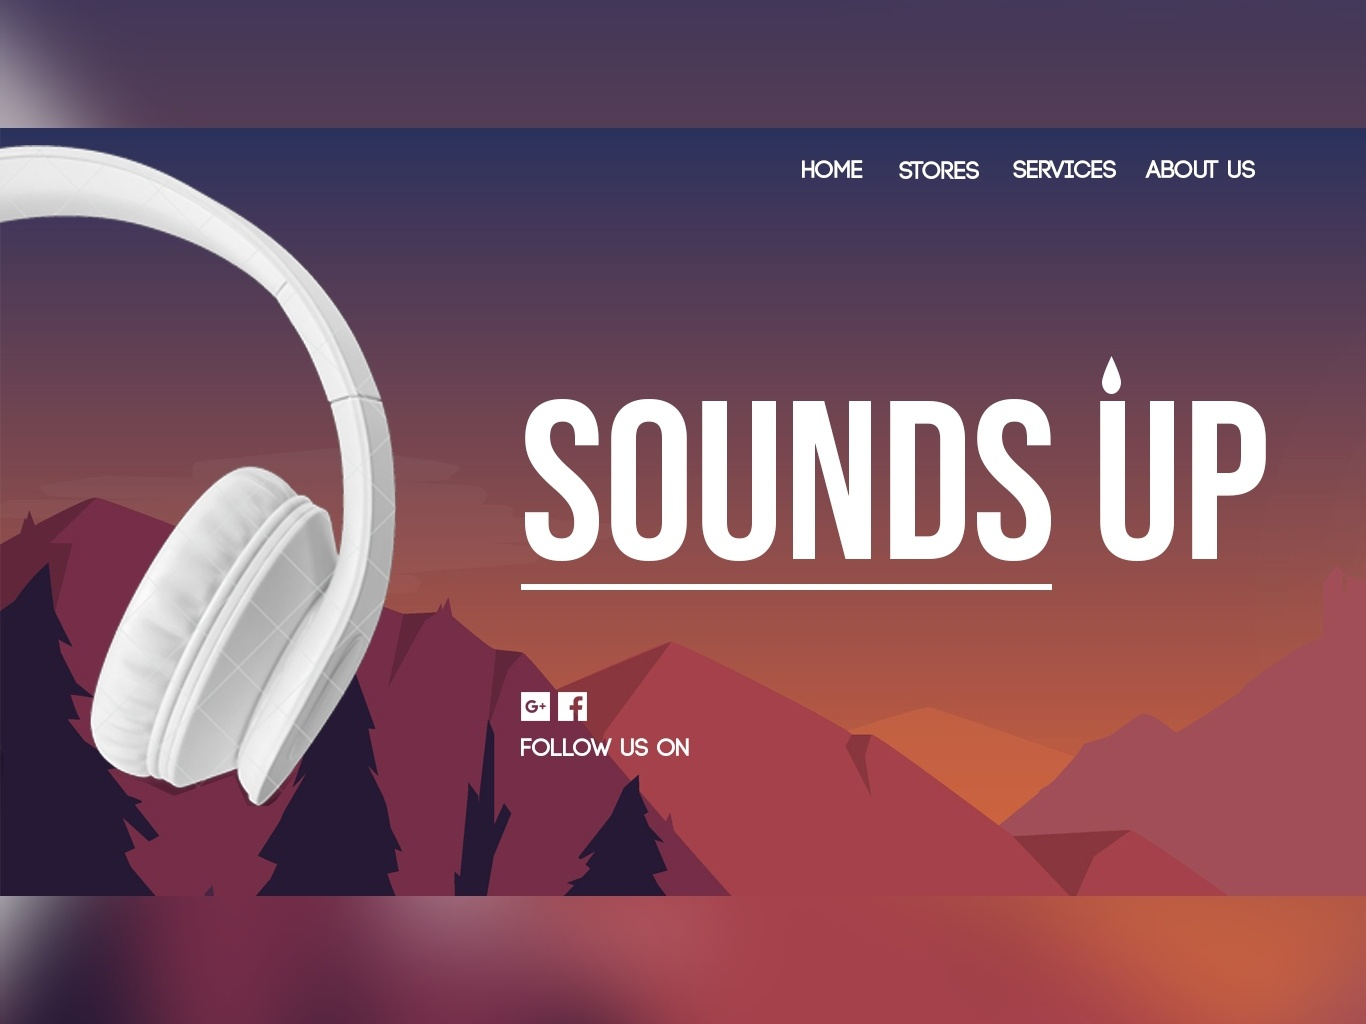 Sounds Up Web UI design web design photoshop illustrator prototype uidesign